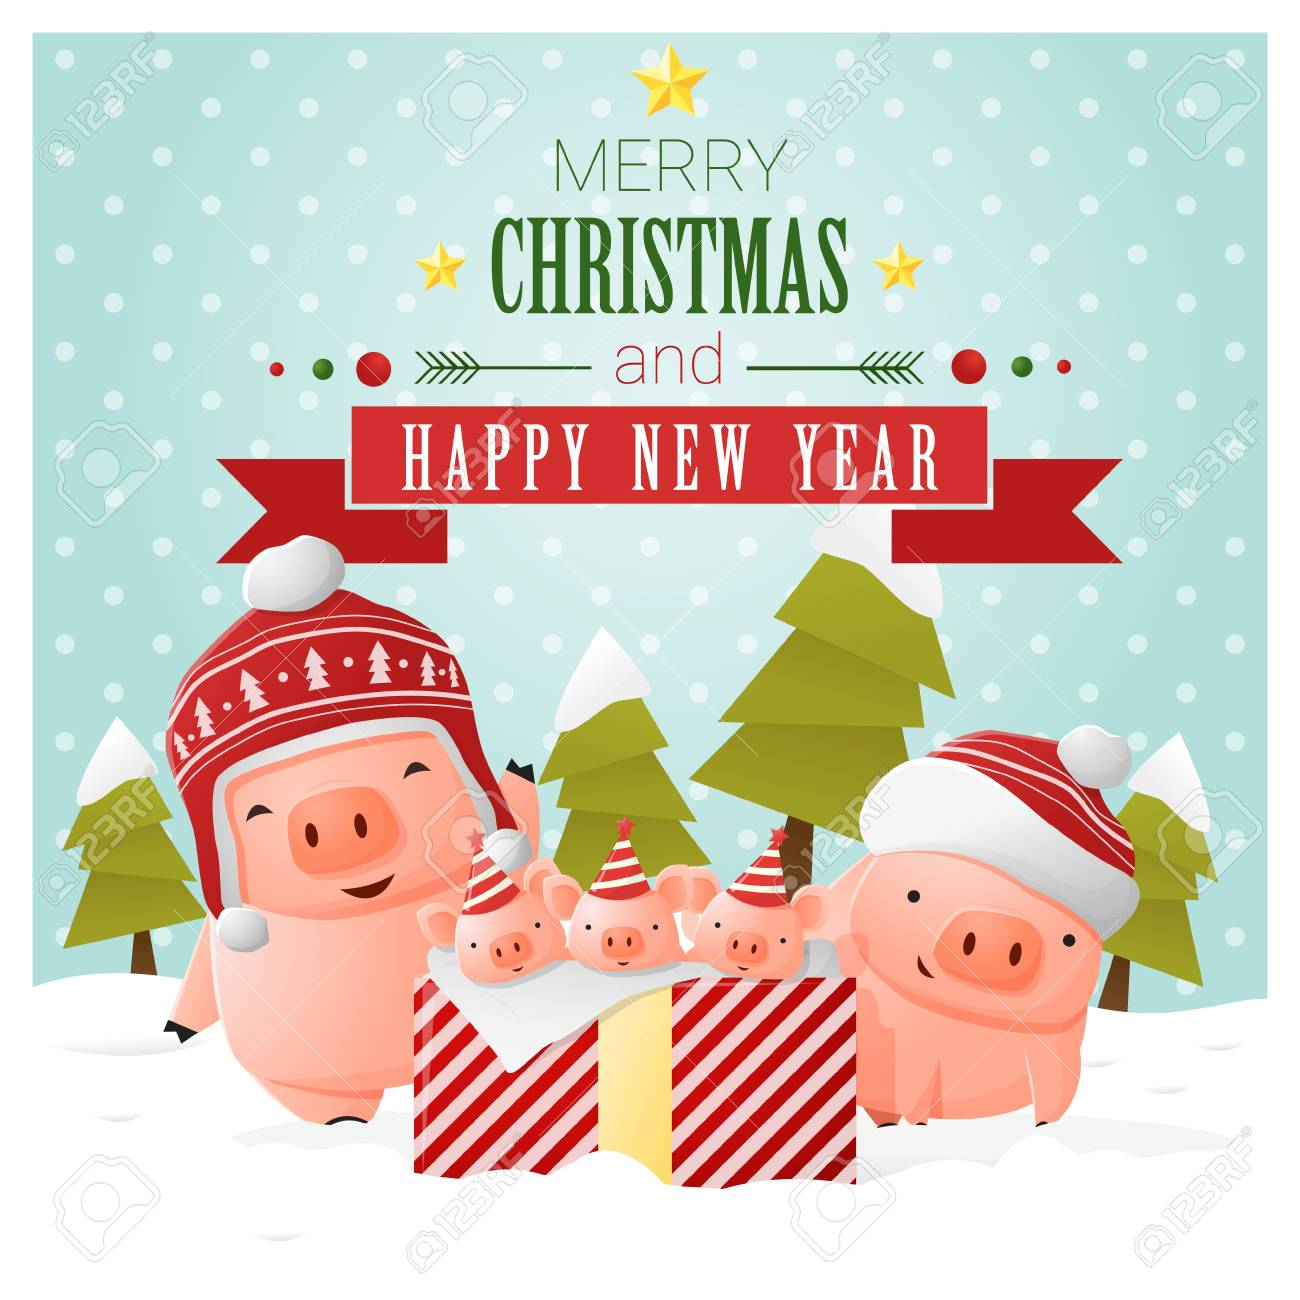 merry christmas and happy new year greeting card with pig family vector illustration stock